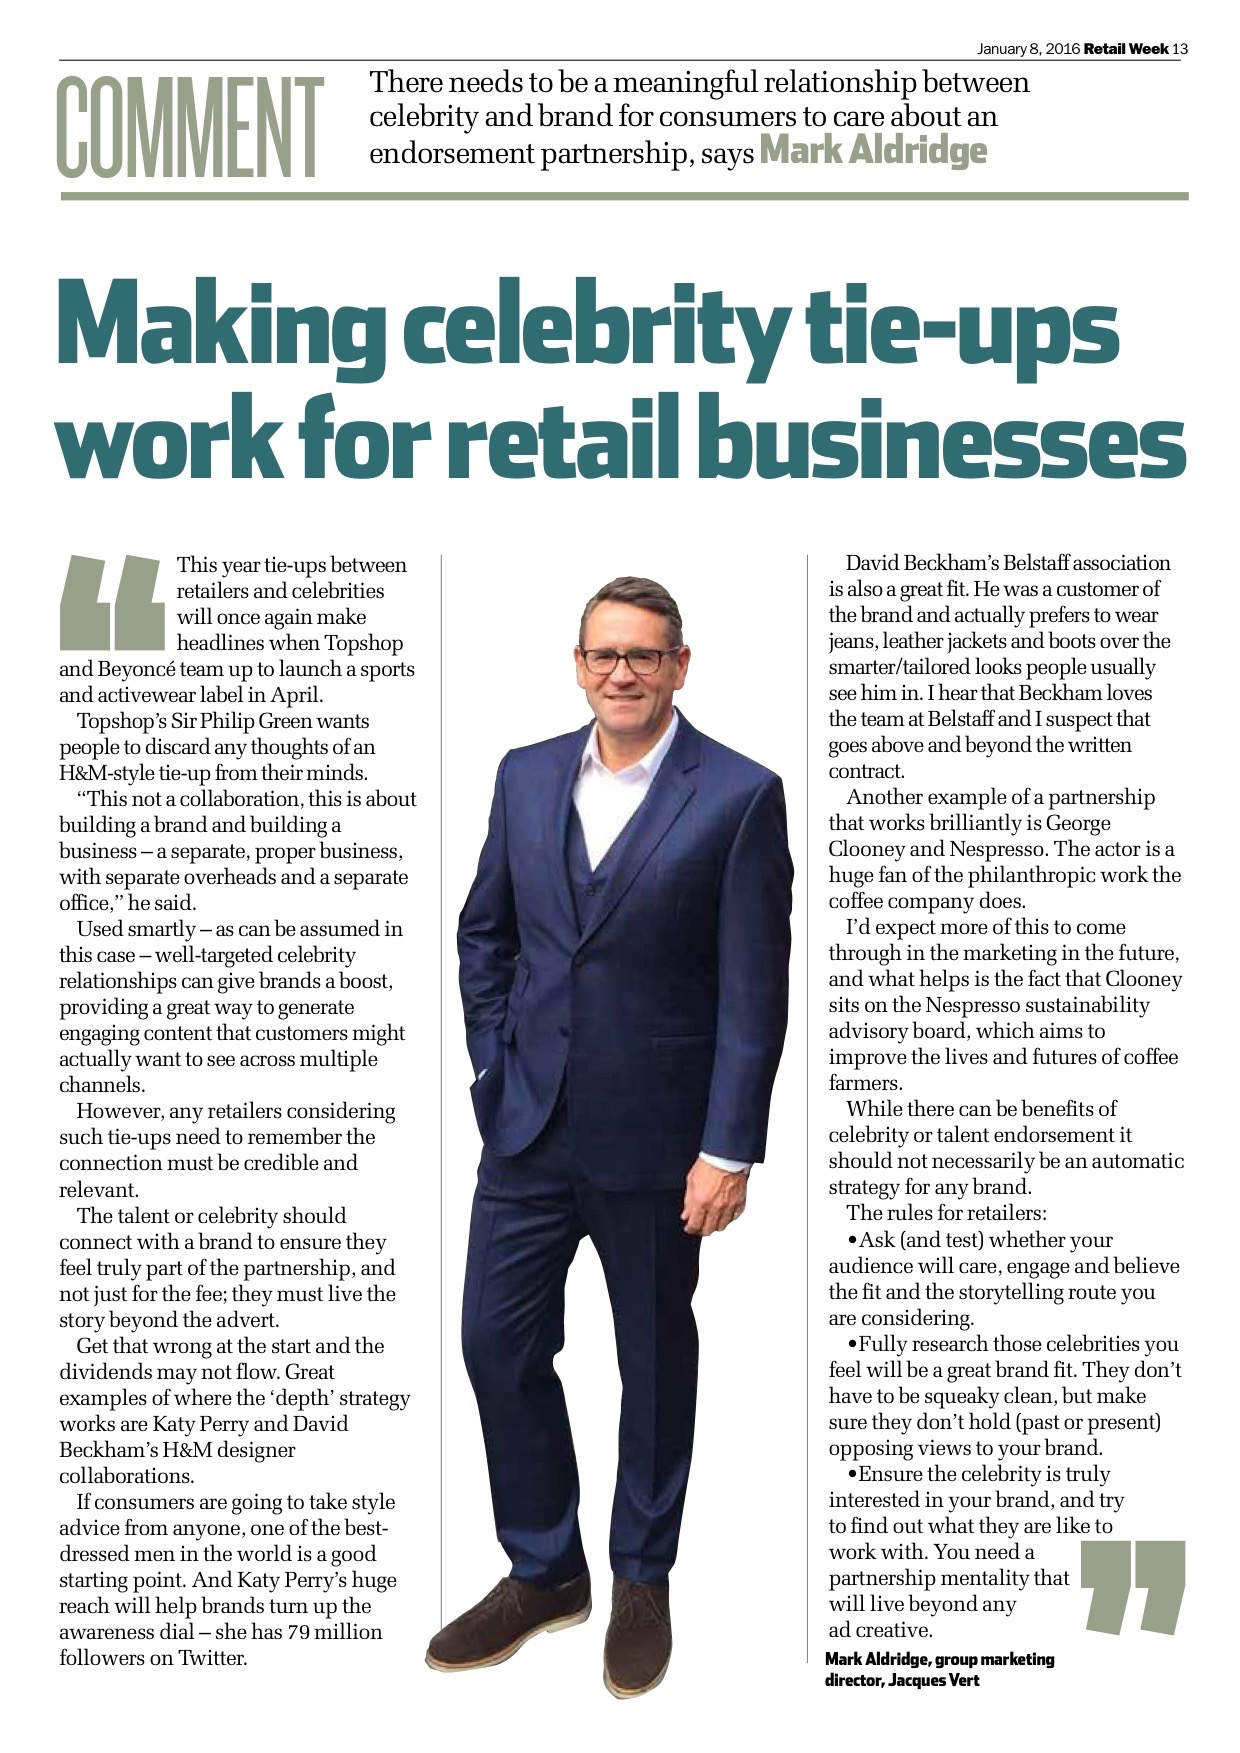 Feature in Retail Week January 2016